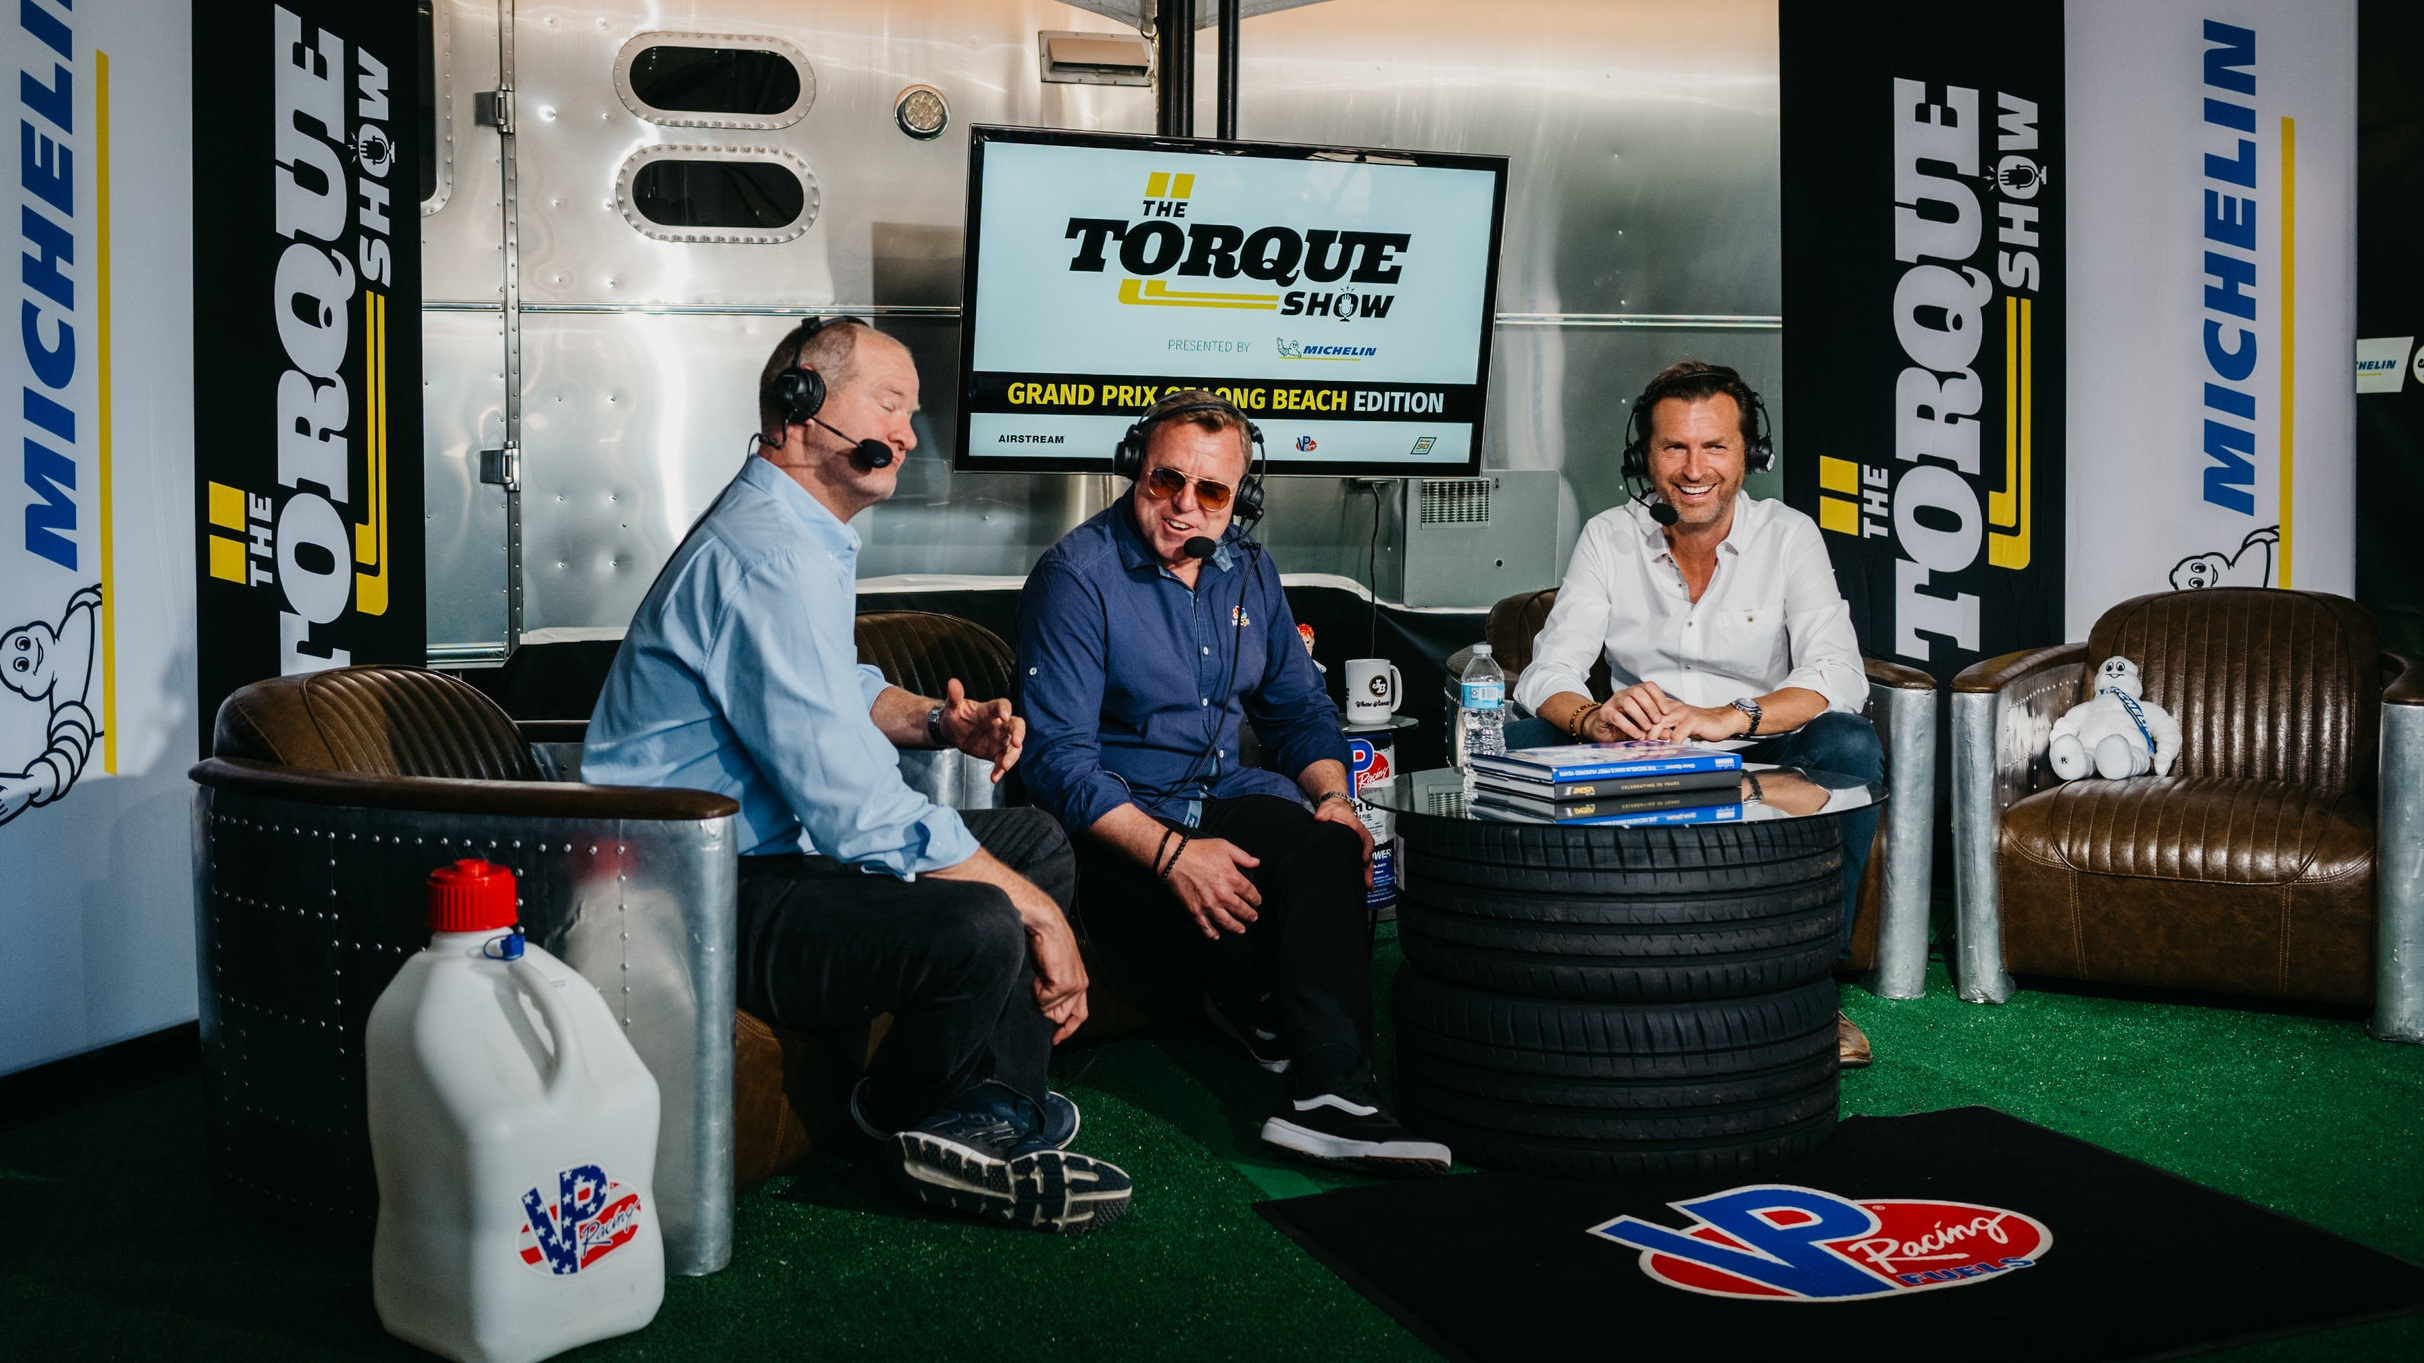 Ongoing Projects - Currently Danielle is working with former race car drivers at The Torque Show, an automotive experiential marketing agency, and more!